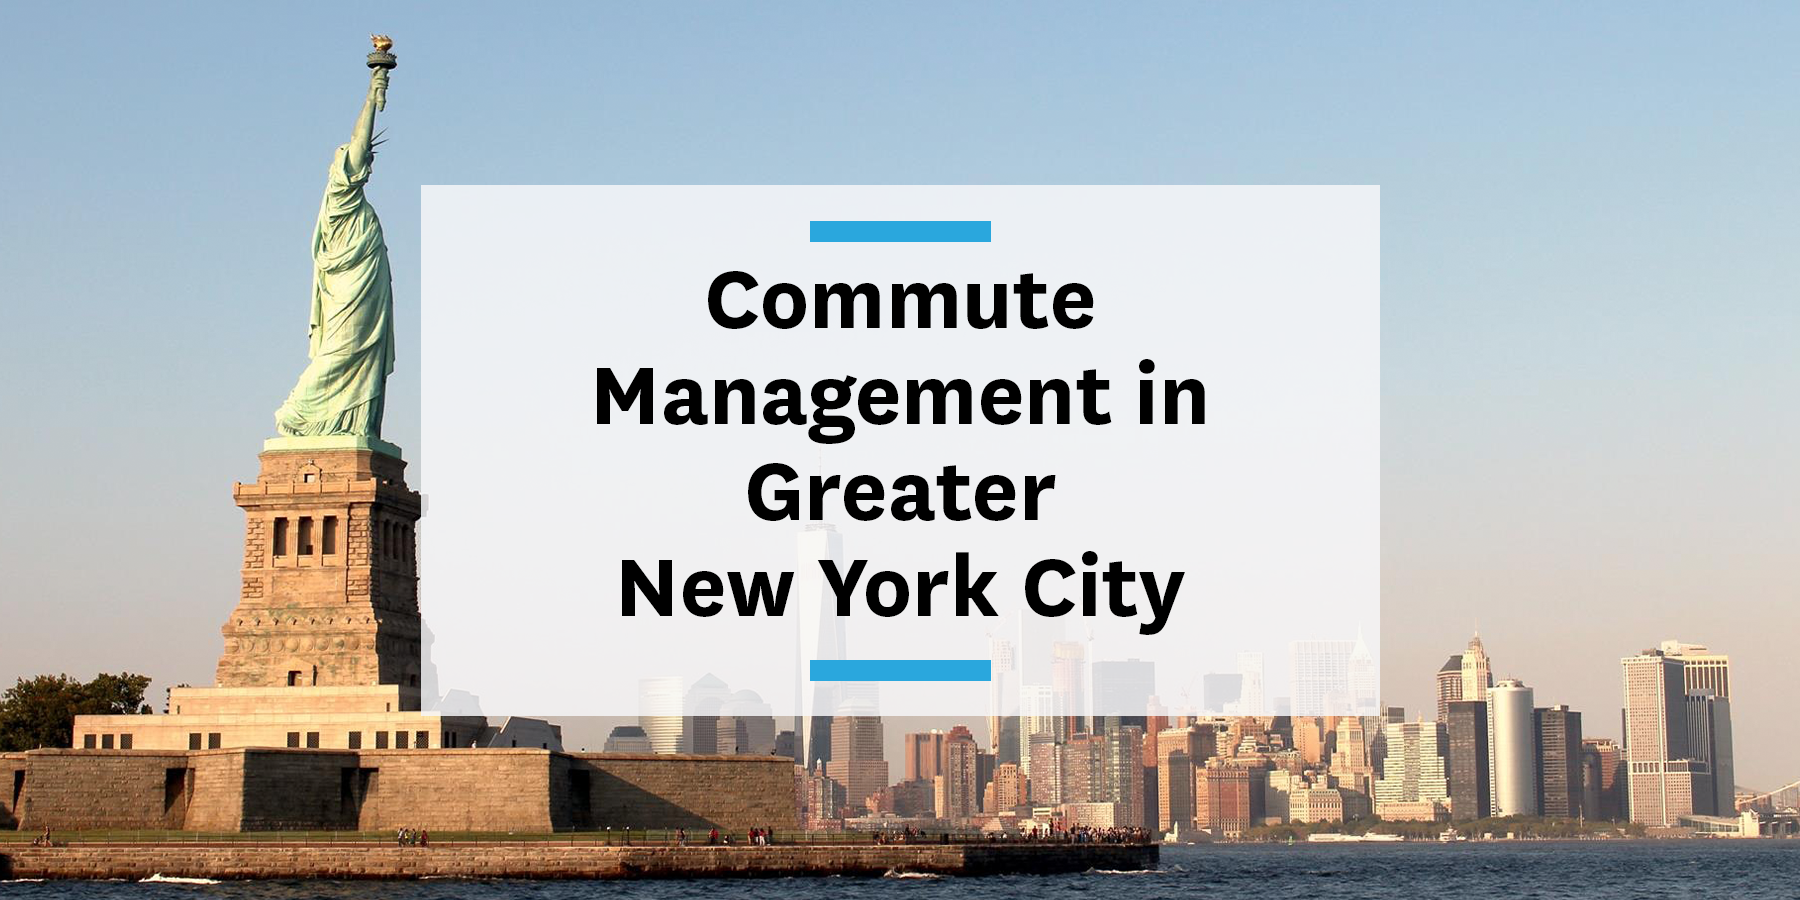 Transitblog - building a commute management strategy in the greater New York City area